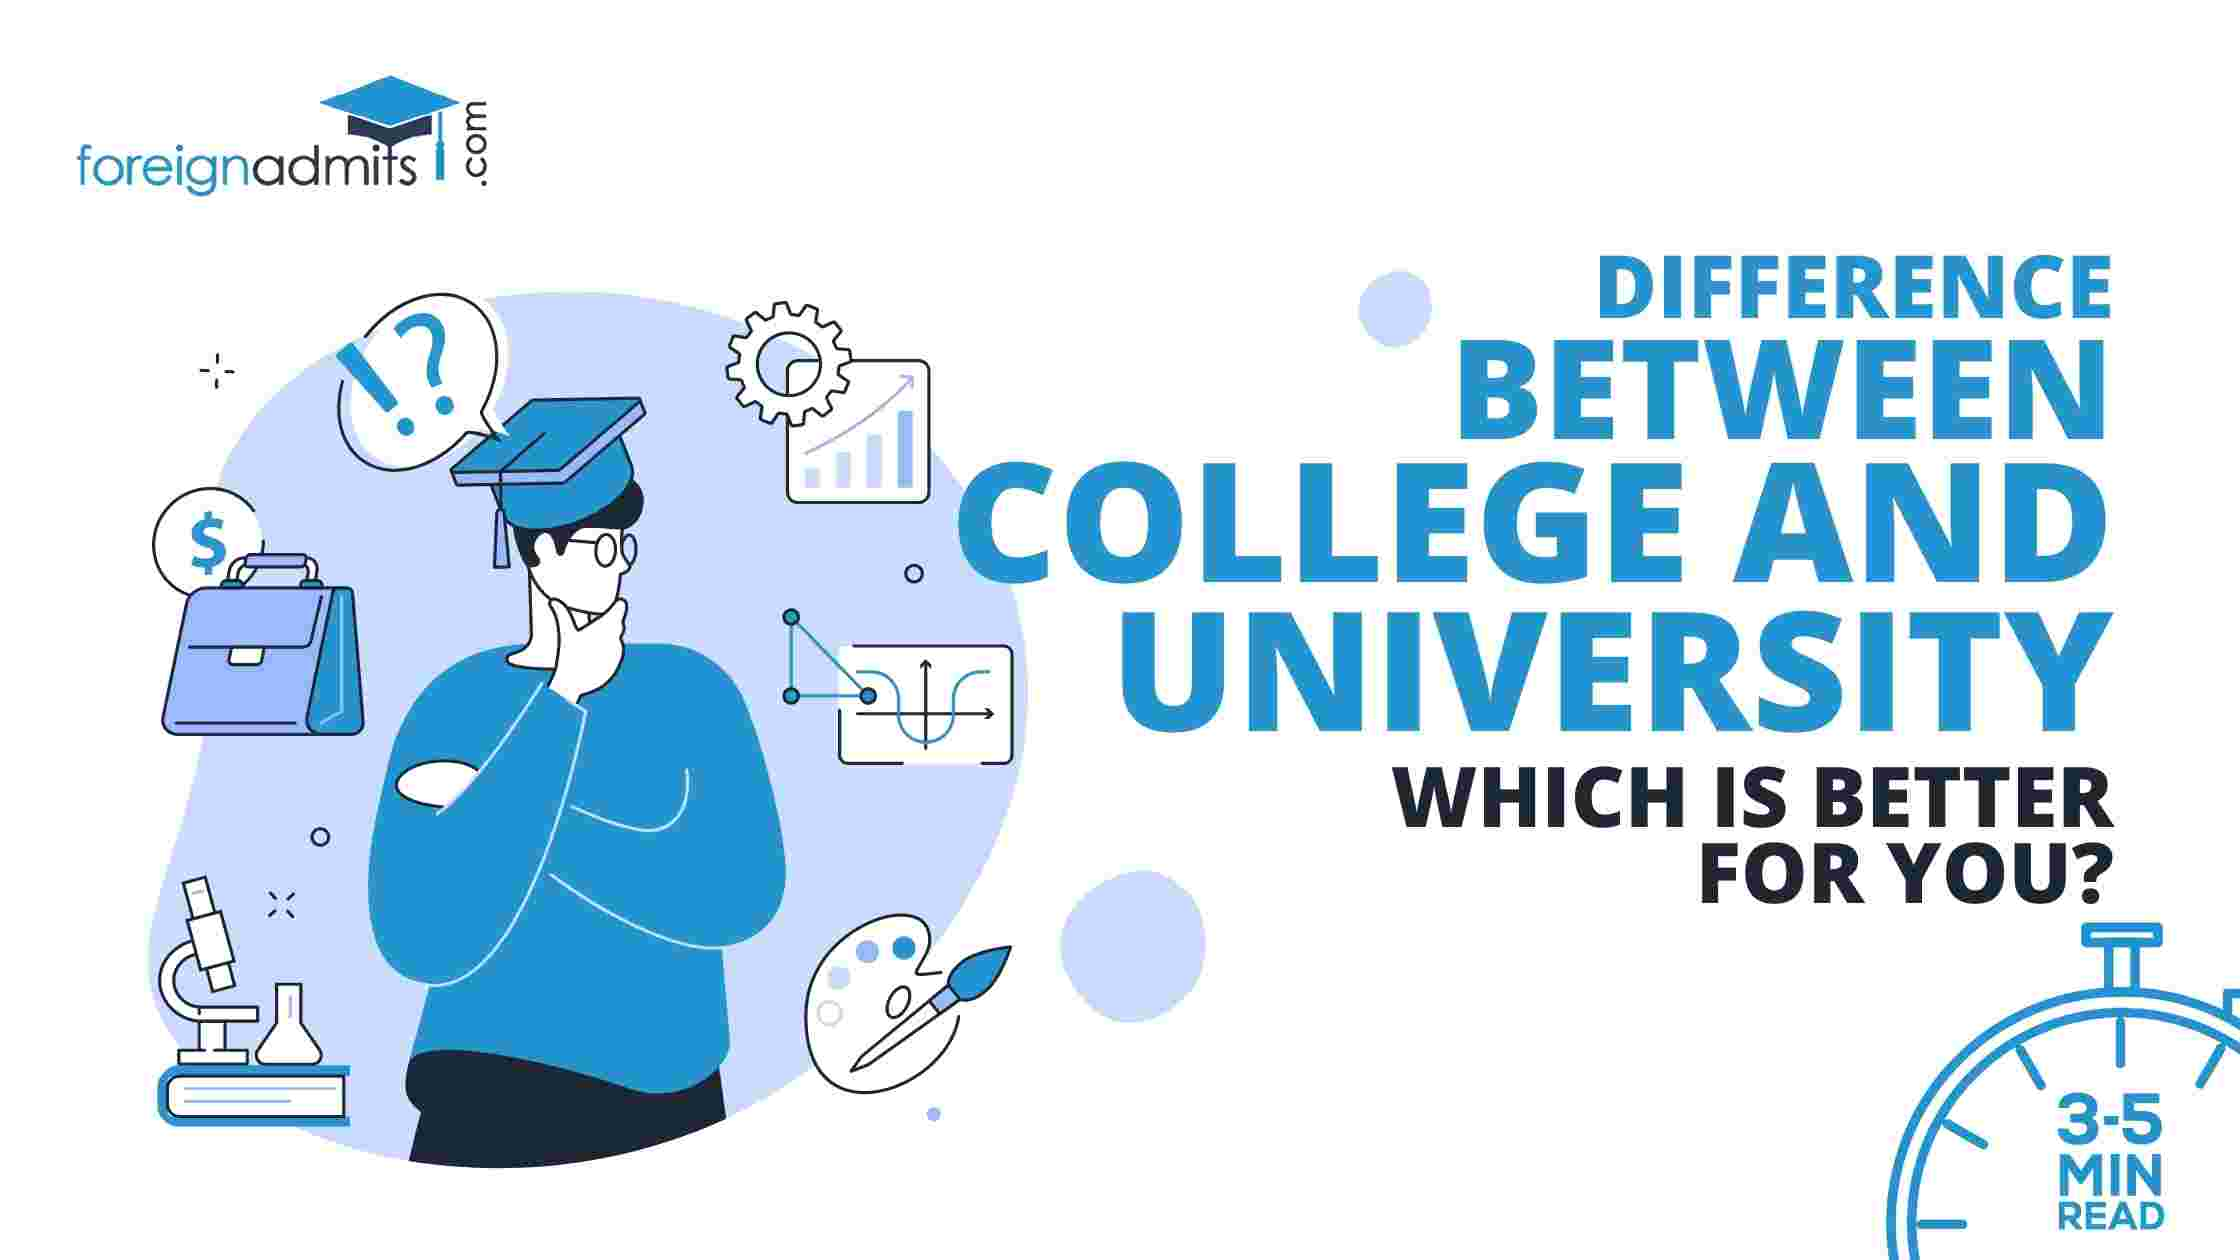 Difference between College and University: Which is better for you?